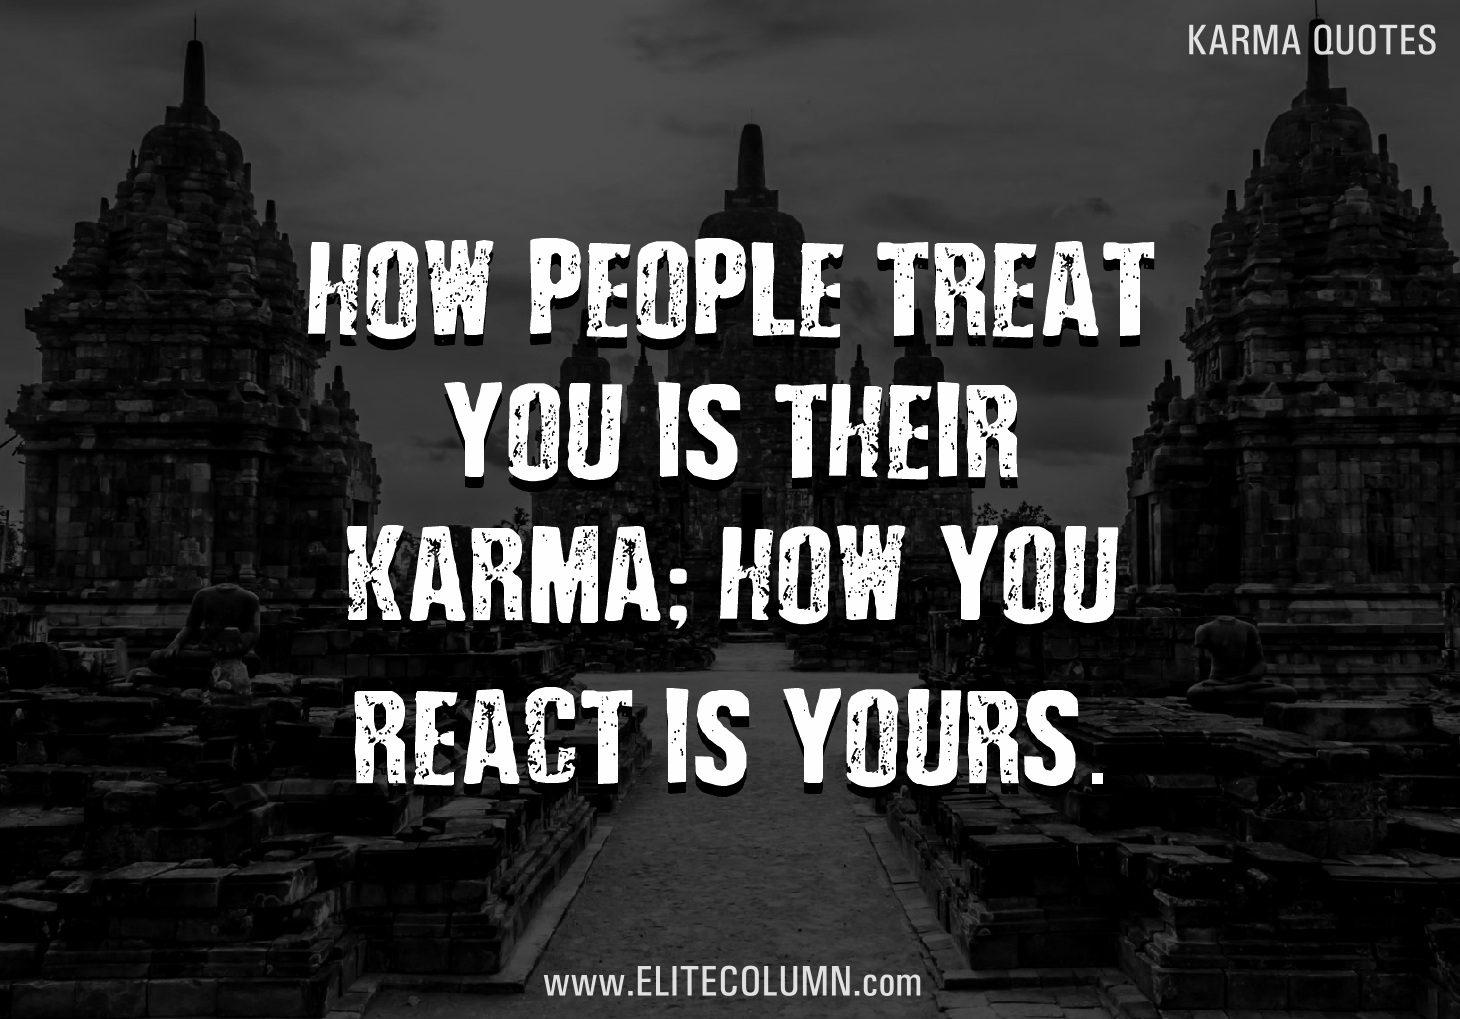 Karma Quotes Sayings: 12 Karma Quotes So Relevant To 21st Century Life